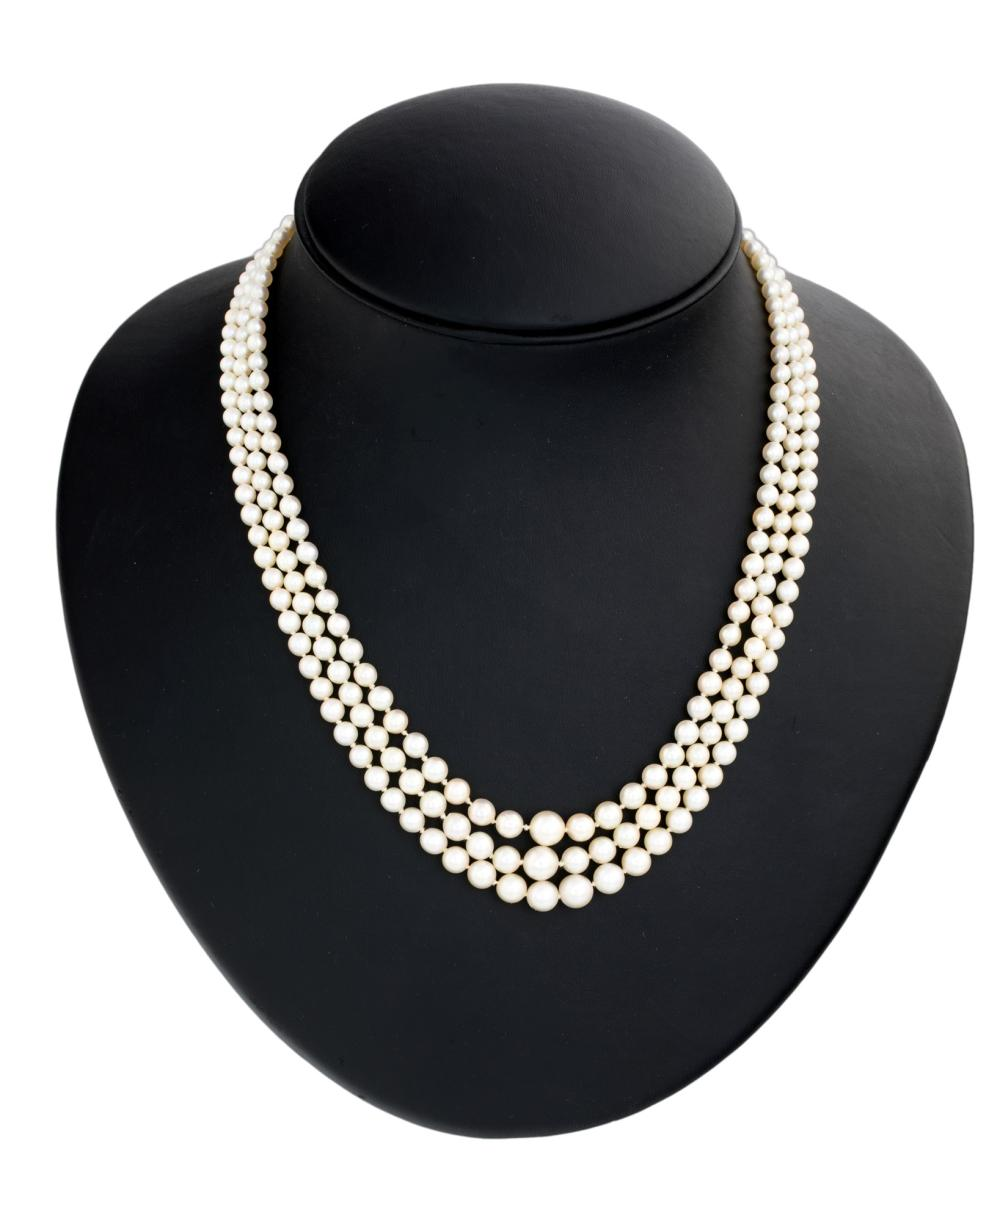 Lot 230: THREE WIRES OF CULTURED PEARLS